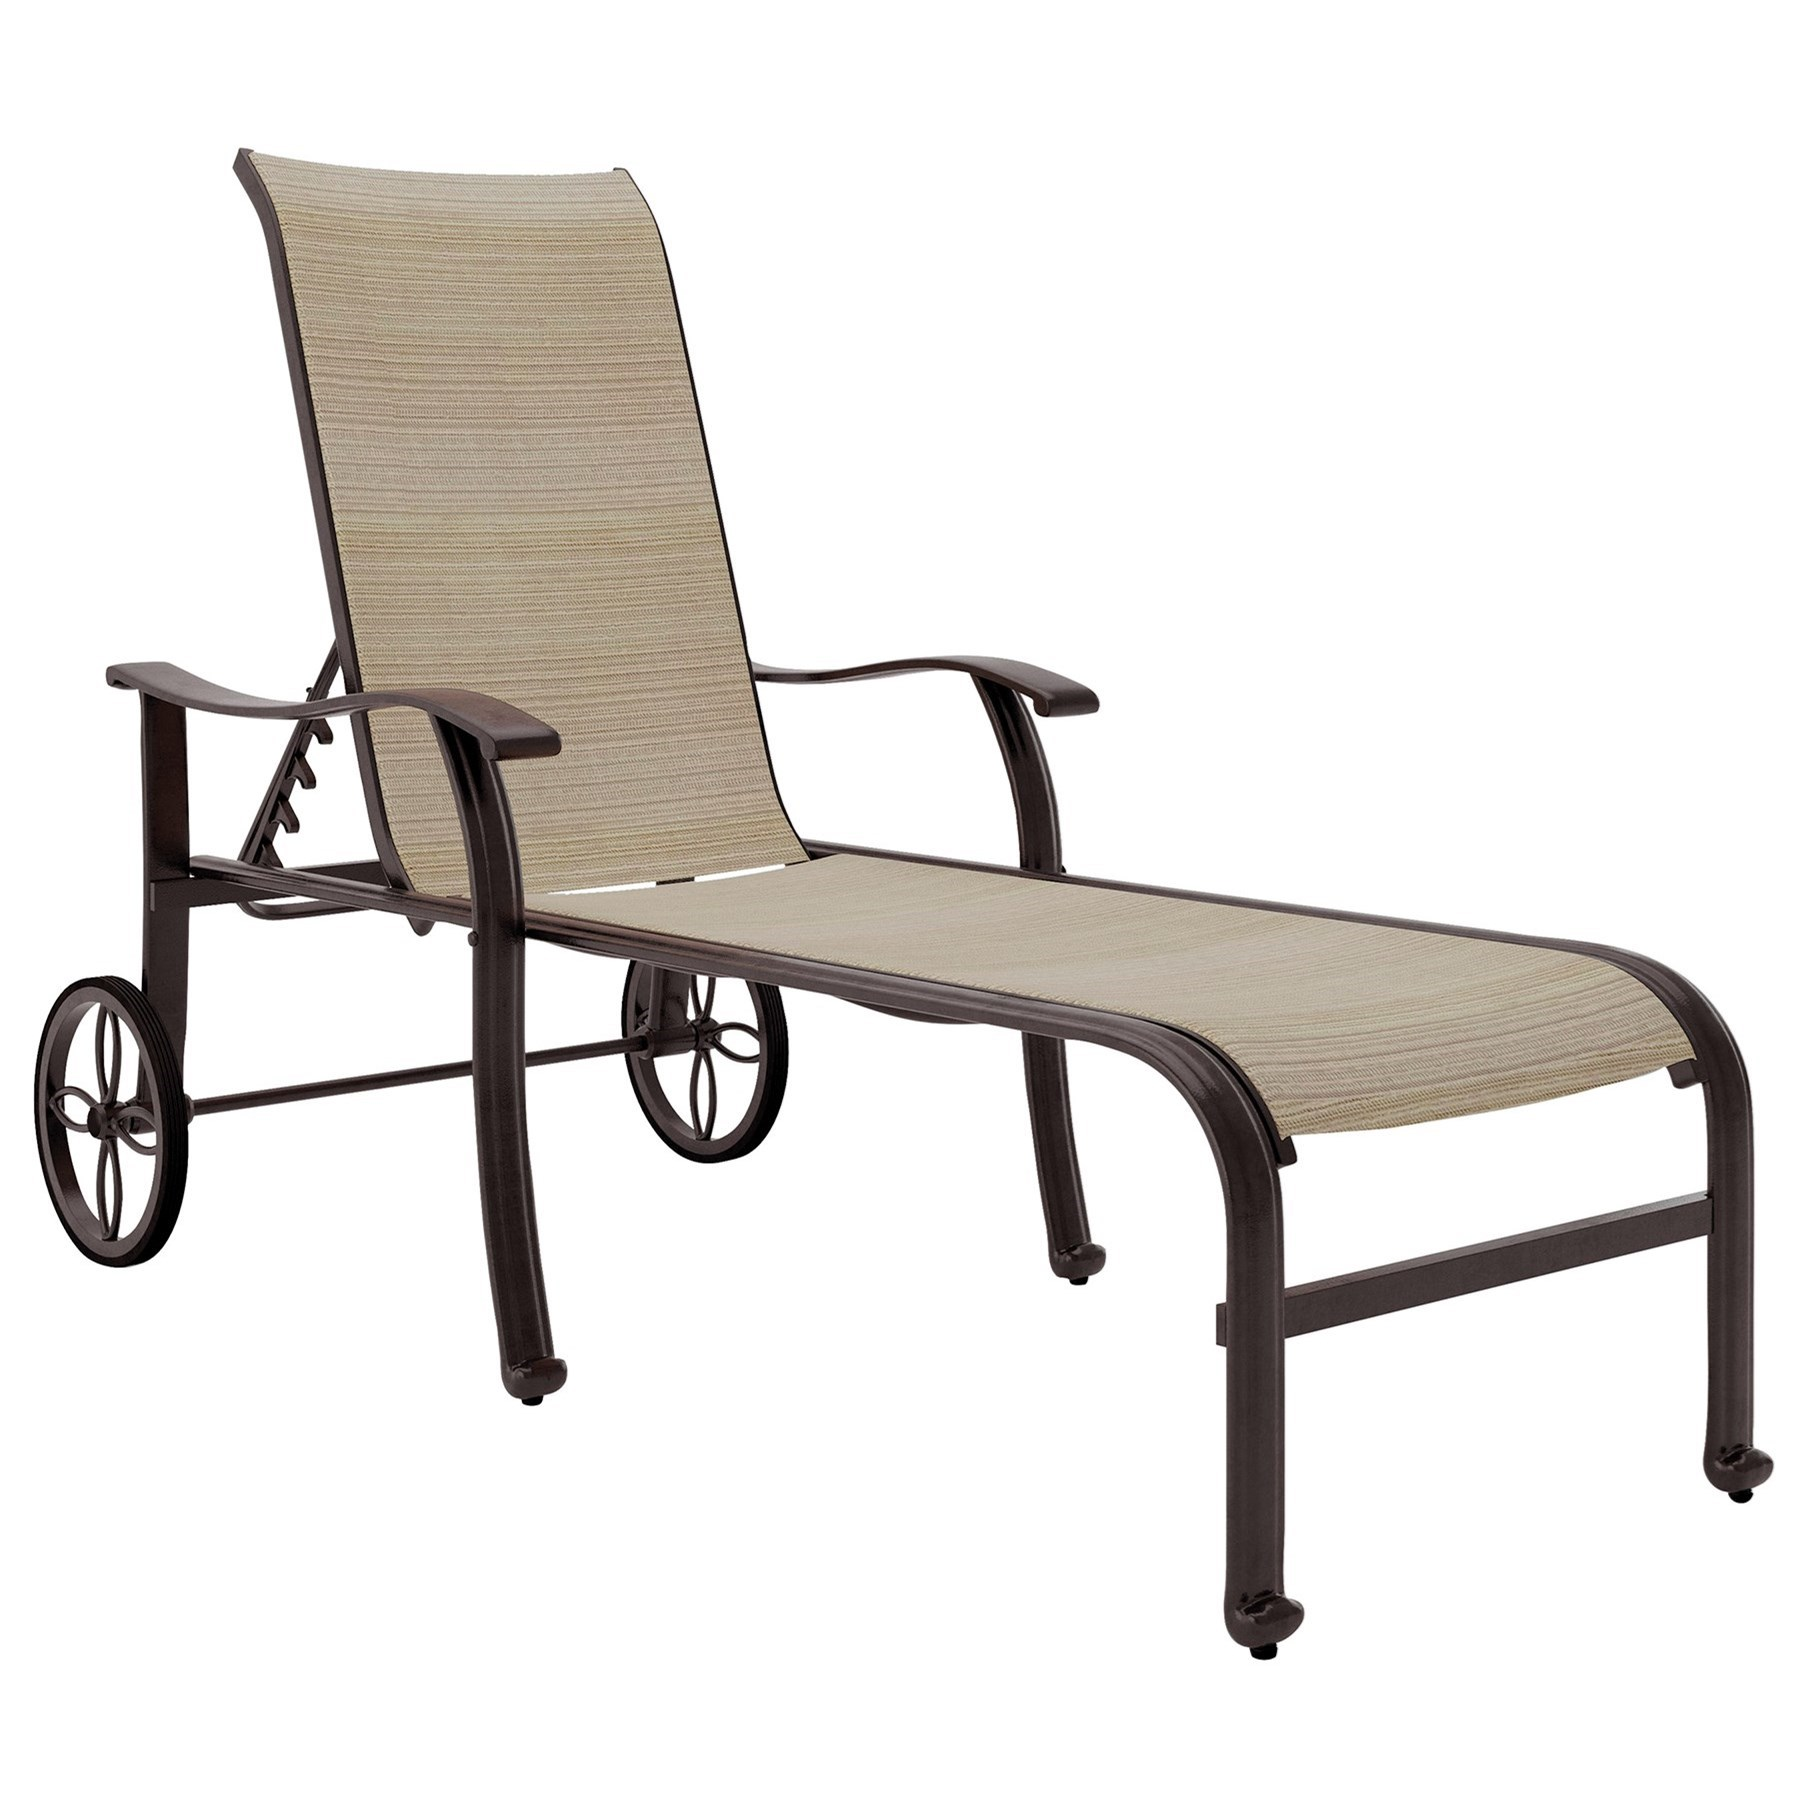 Bass Lake Sling Chaise Lounge by Signature Design by Ashley at Lapeer Furniture & Mattress Center